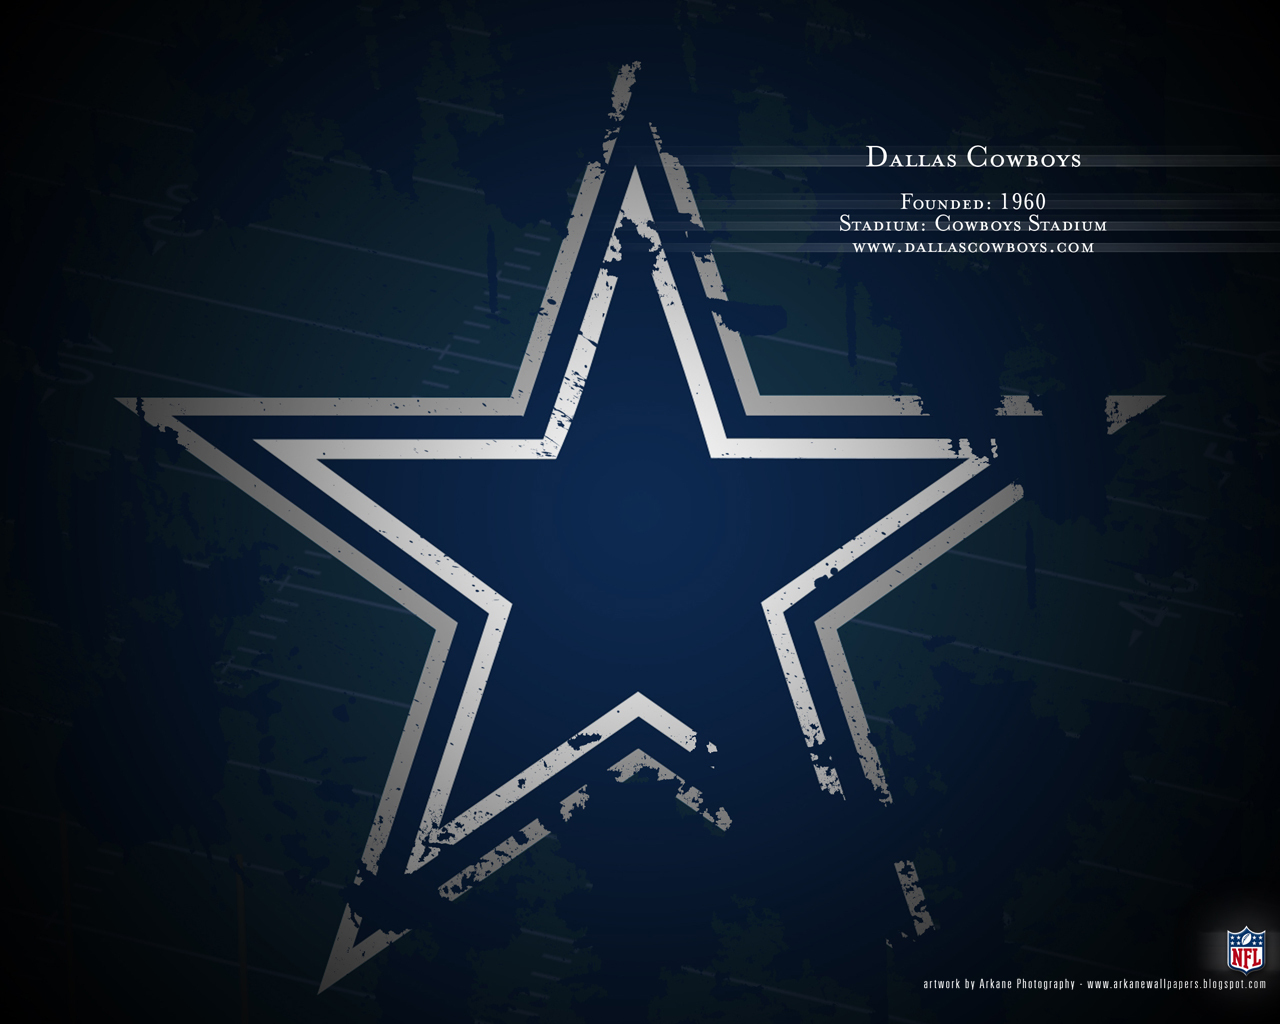 download this 1920x1200 JPEG of Miles Austin for your desktop wallpaper.